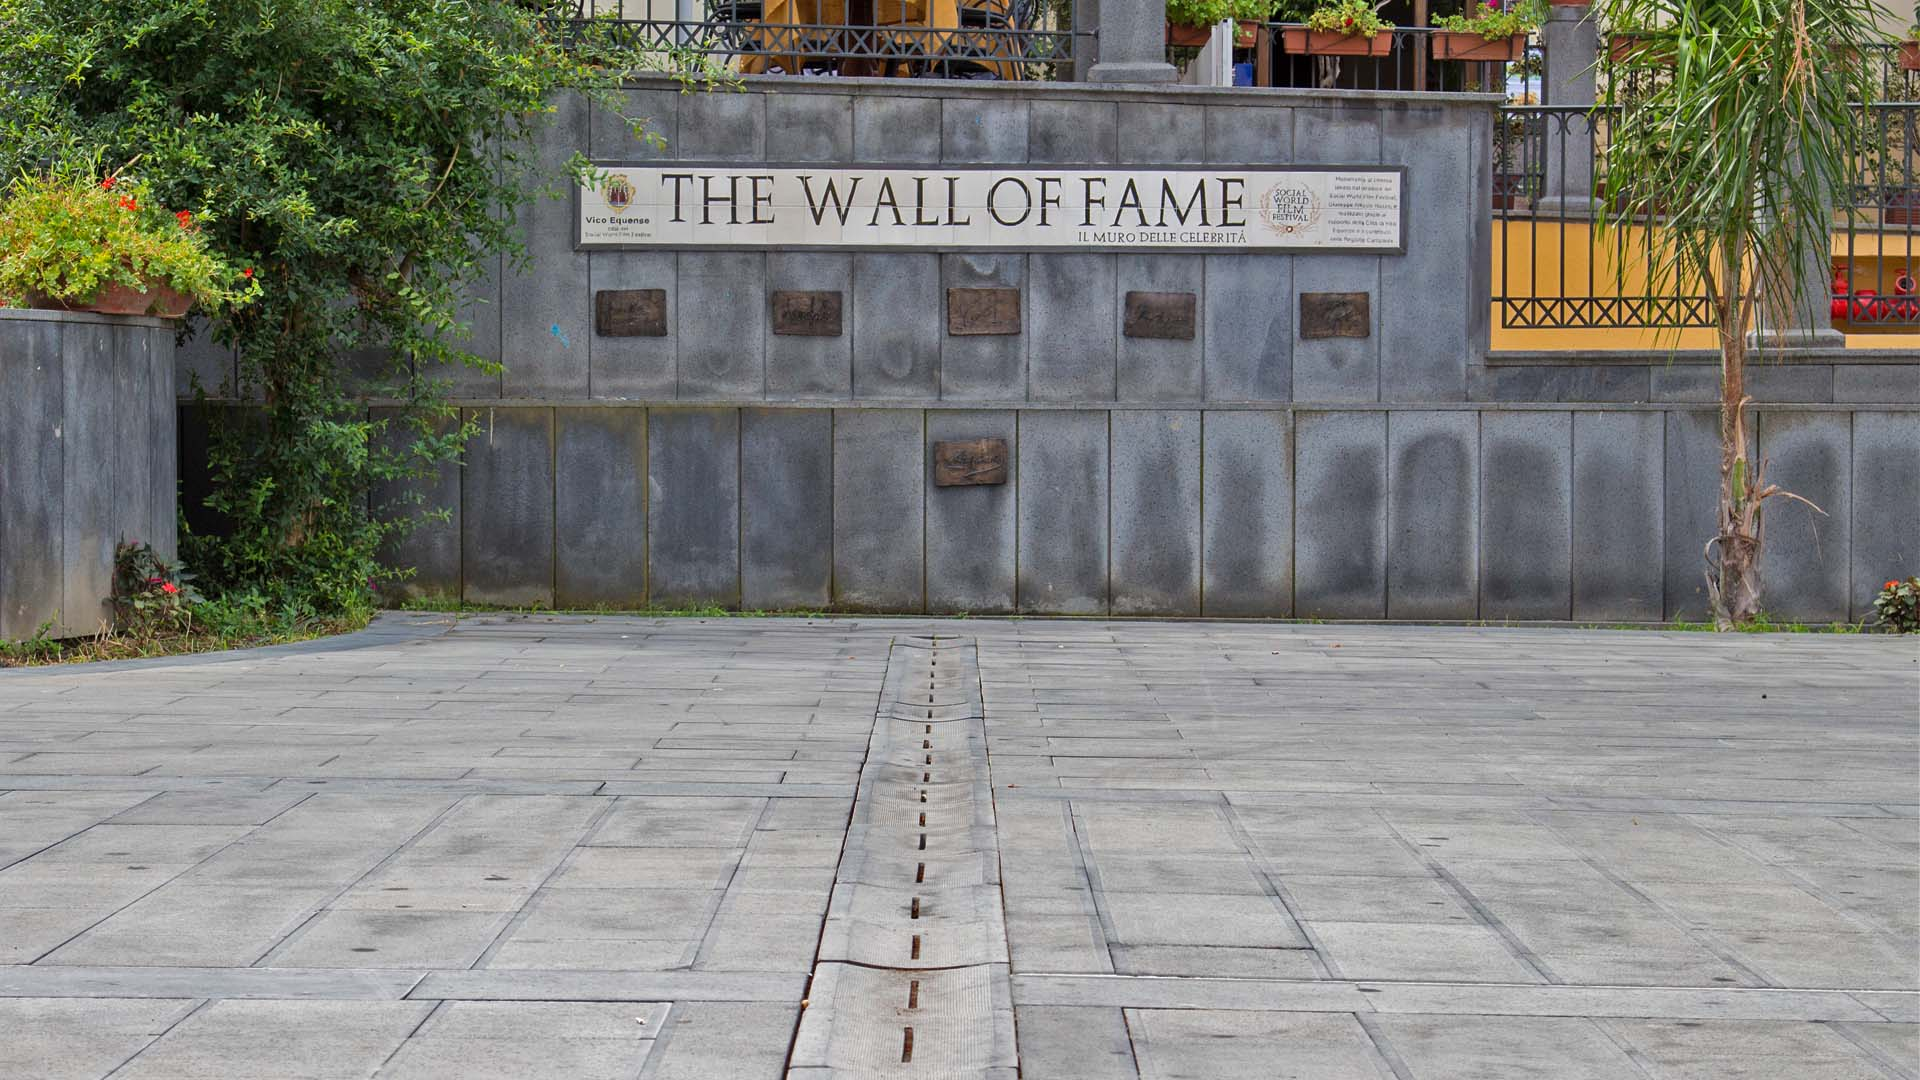 Museo del cinema - THE WALL OF FAME